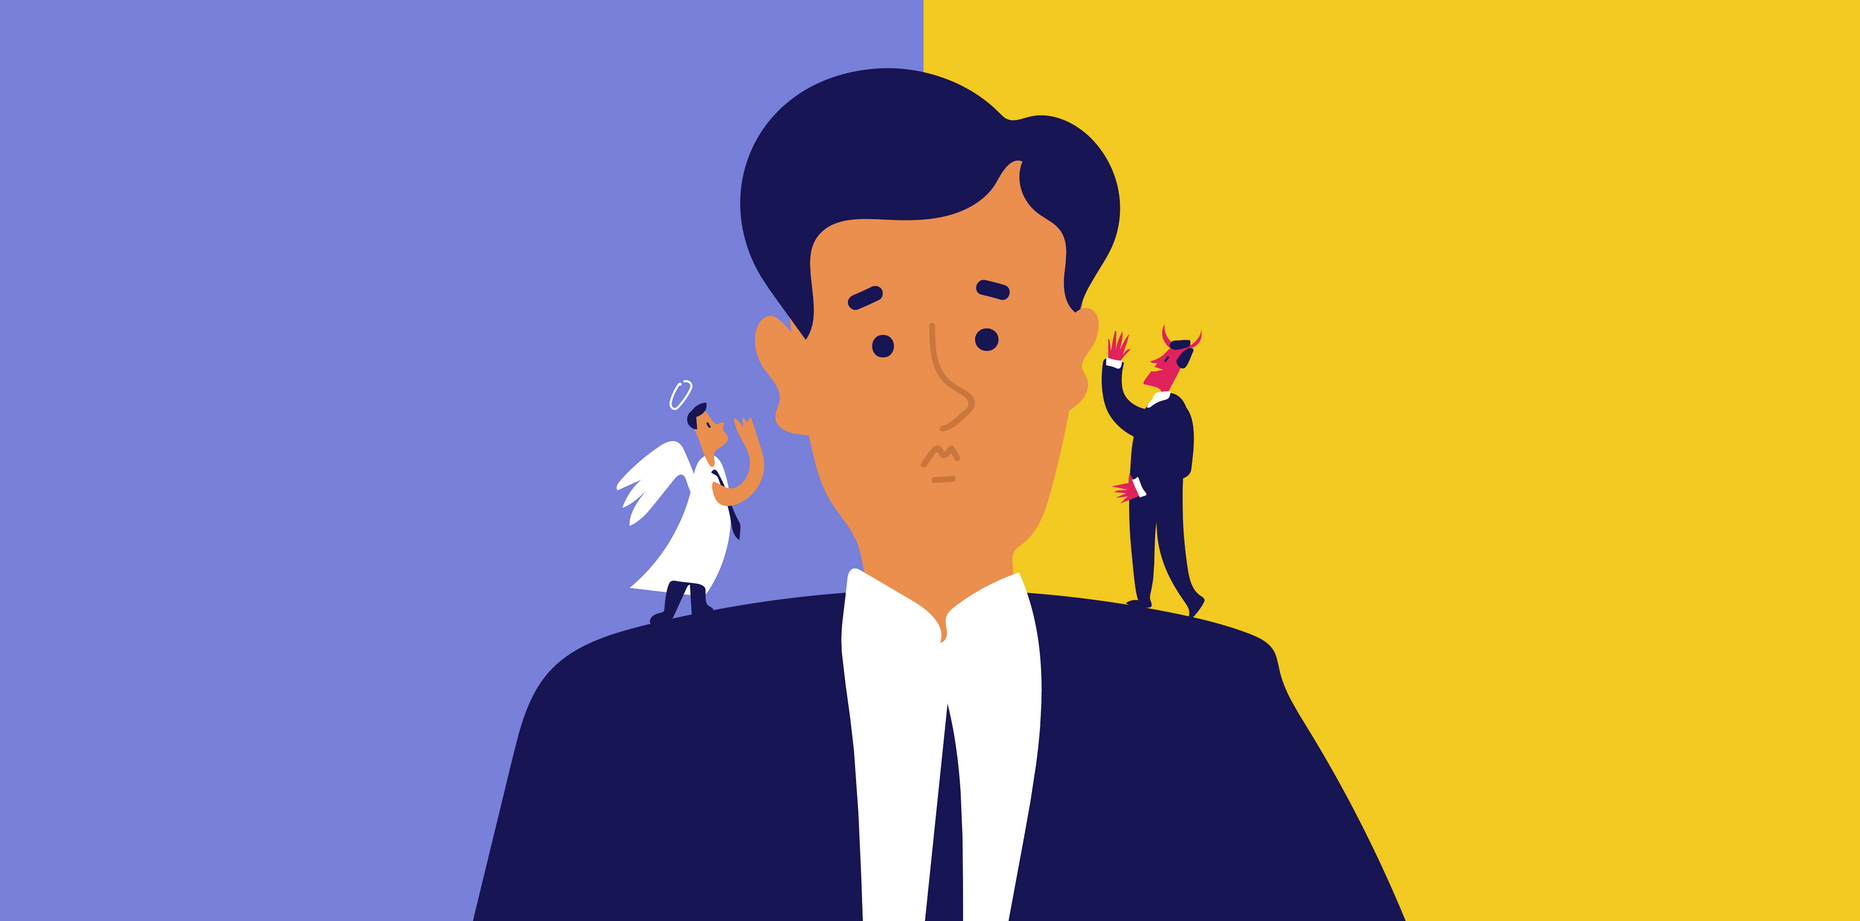 Vector Image of a man listening to an angel and devil talking on each shoulder